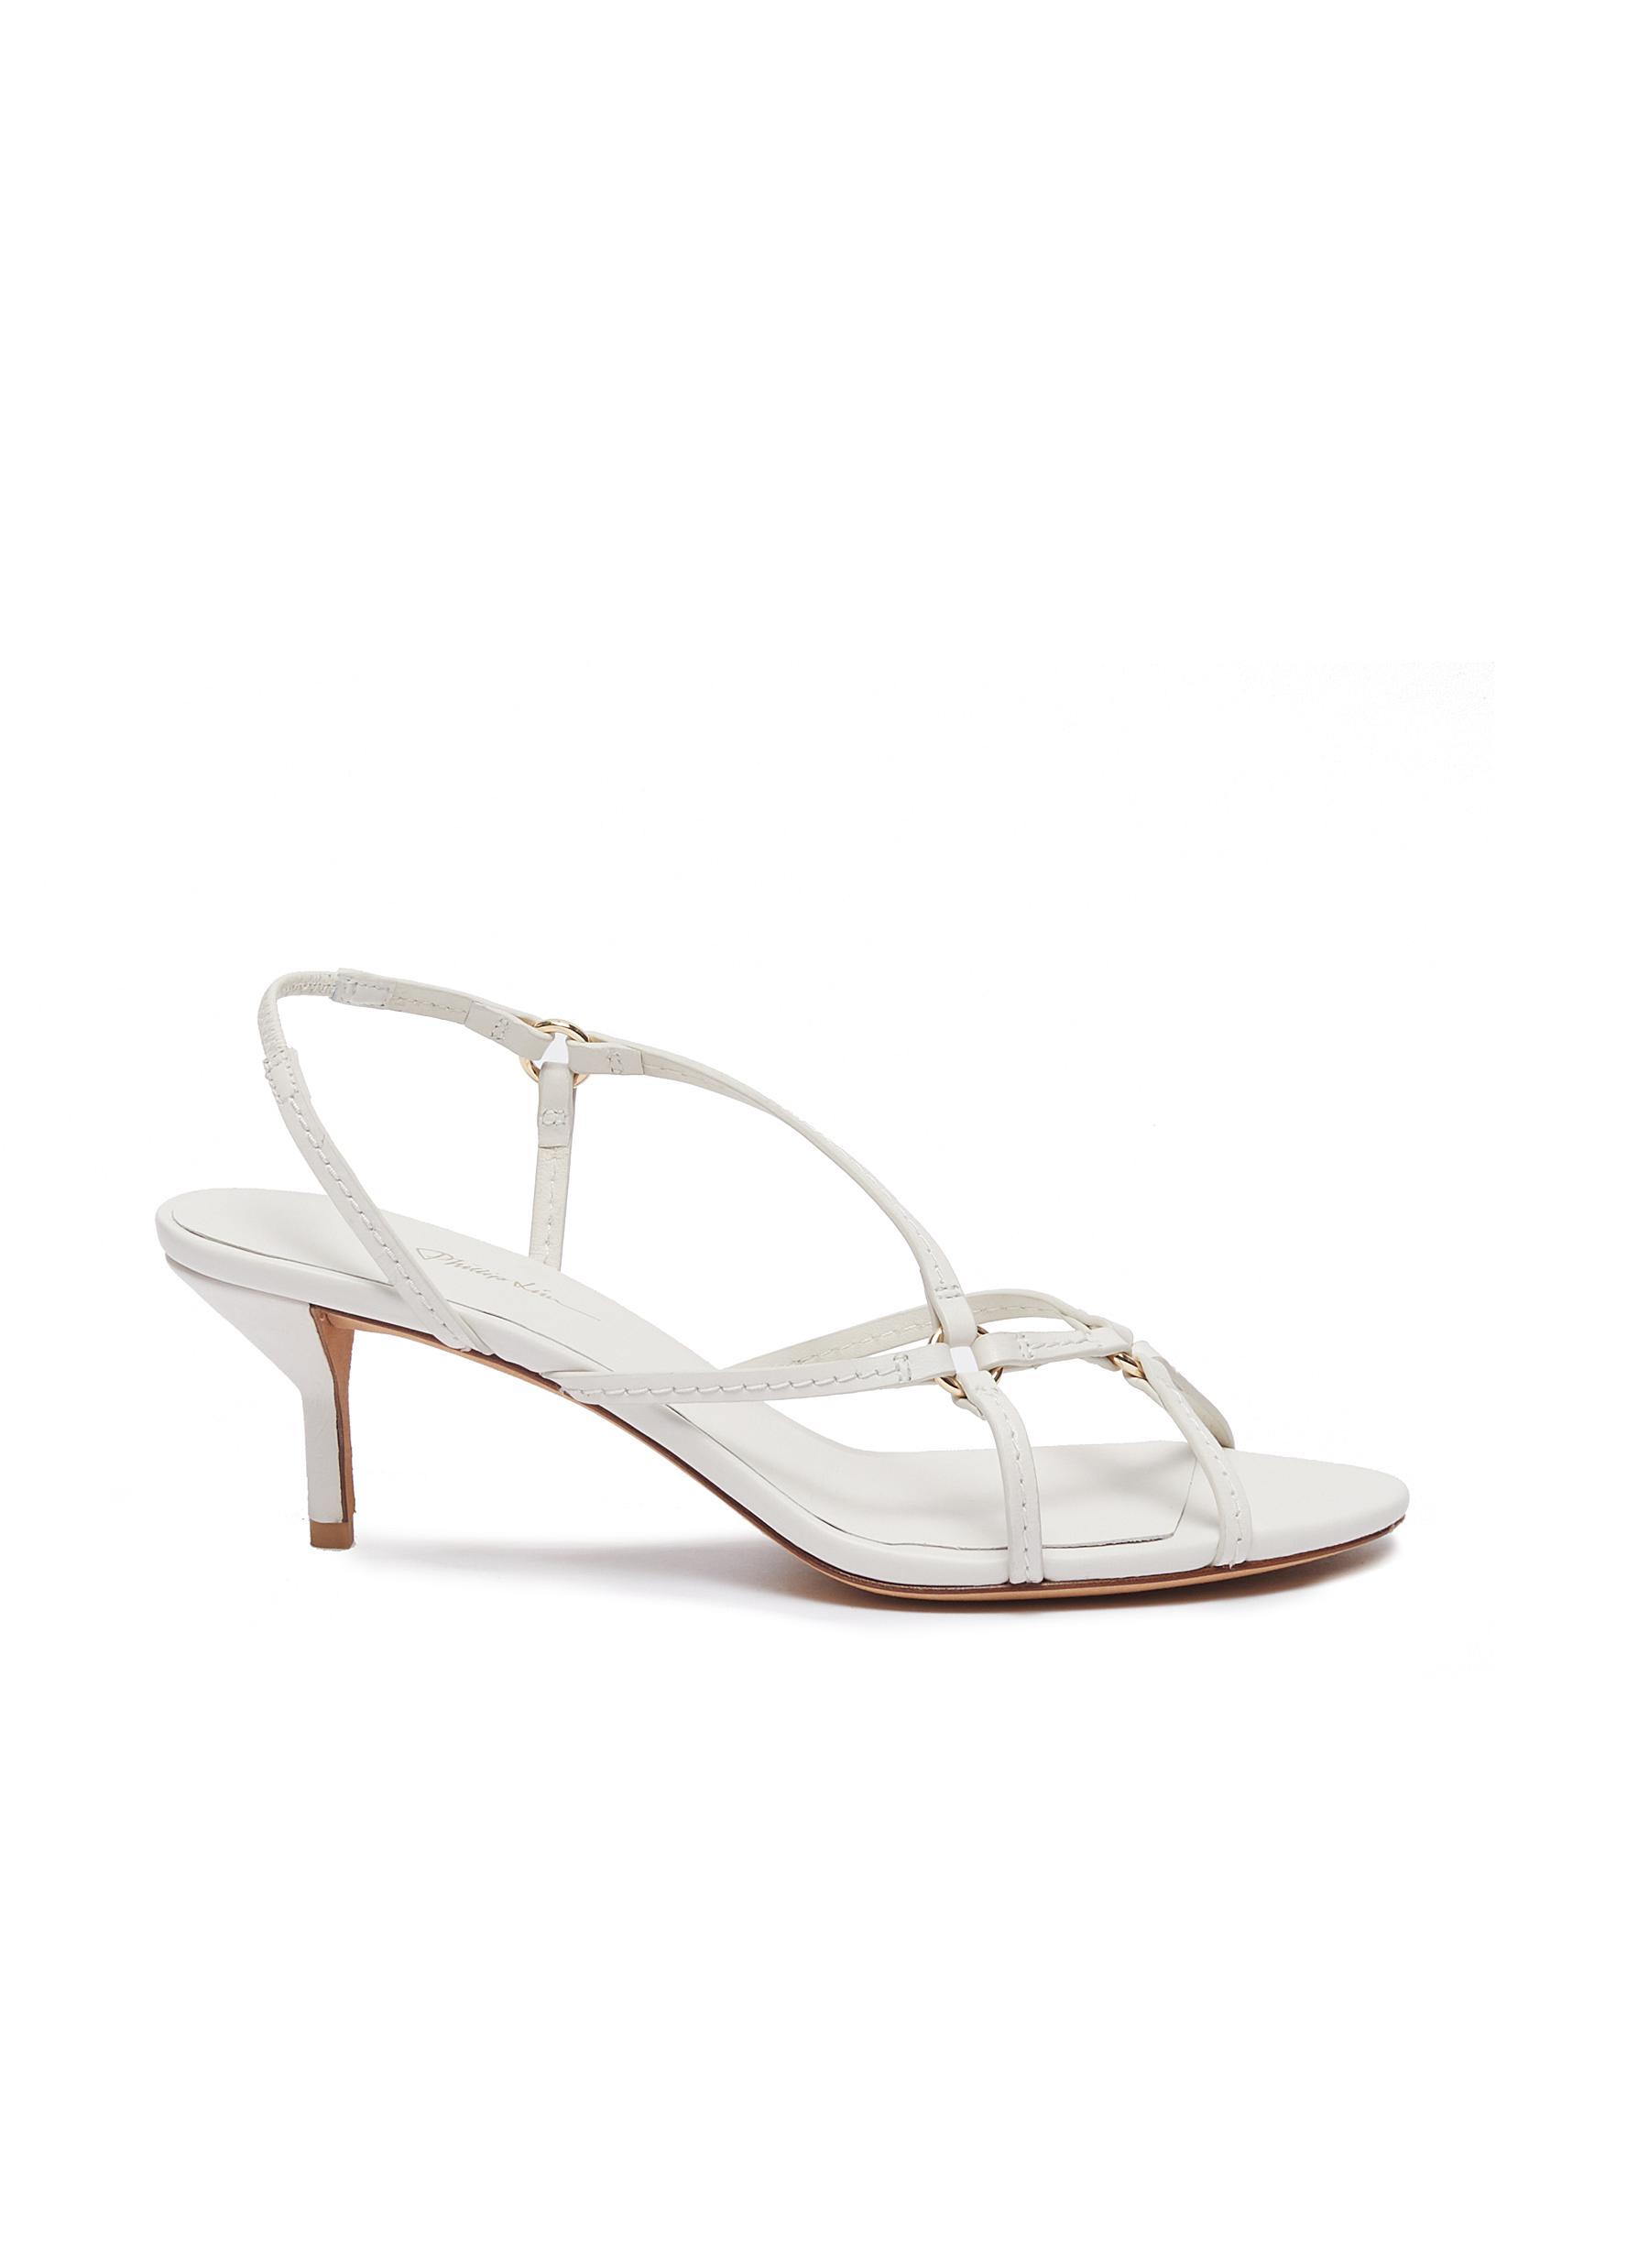 3.1 Phillip Lim Mid Heels Louise leather sandals